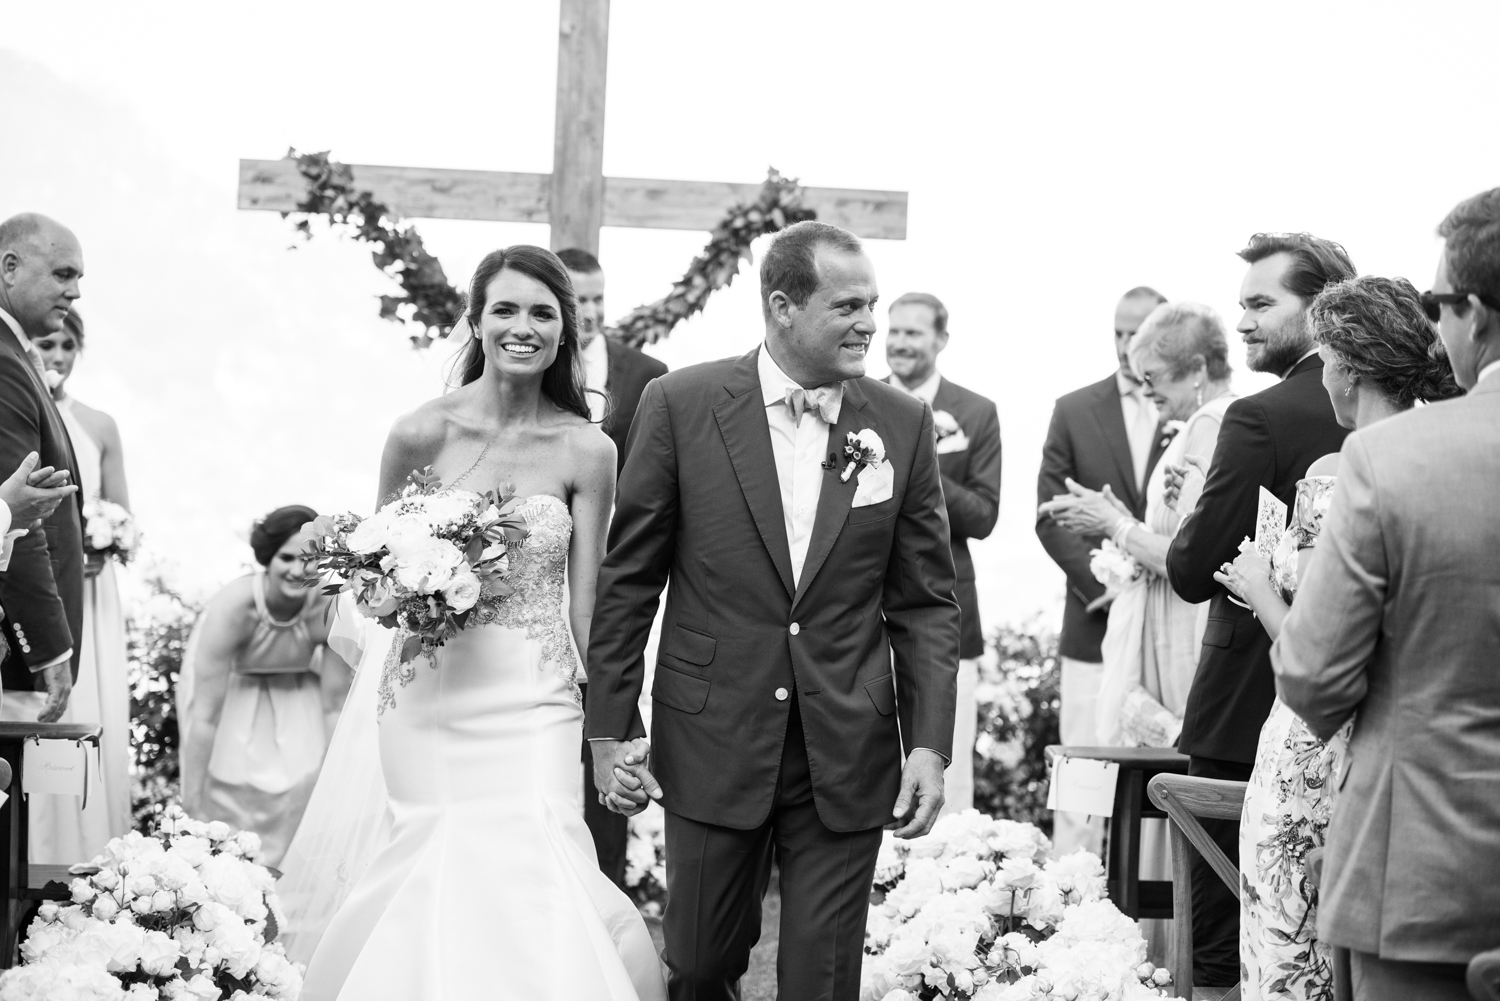 The couple just married walks back down the aisle at an Amalfi Coast wedding ceremony: Sylvie Gil Photography